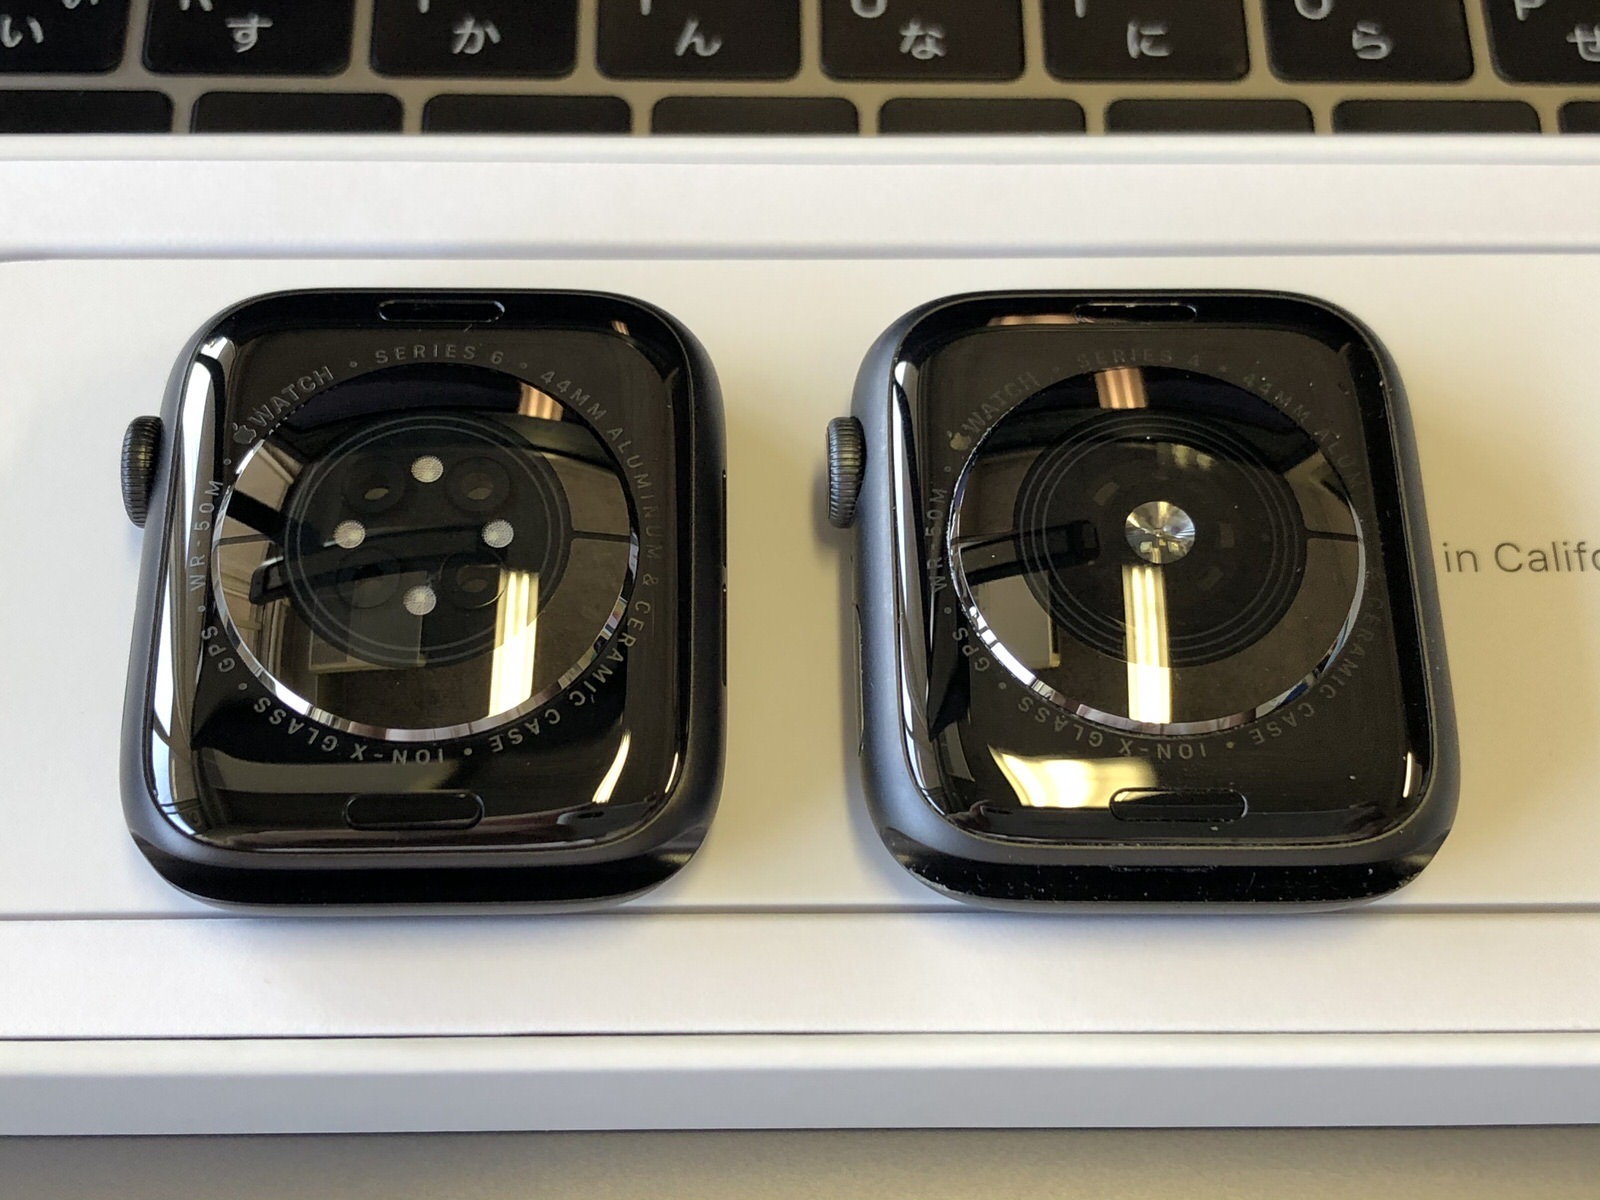 Apple Watch Series 6 −11